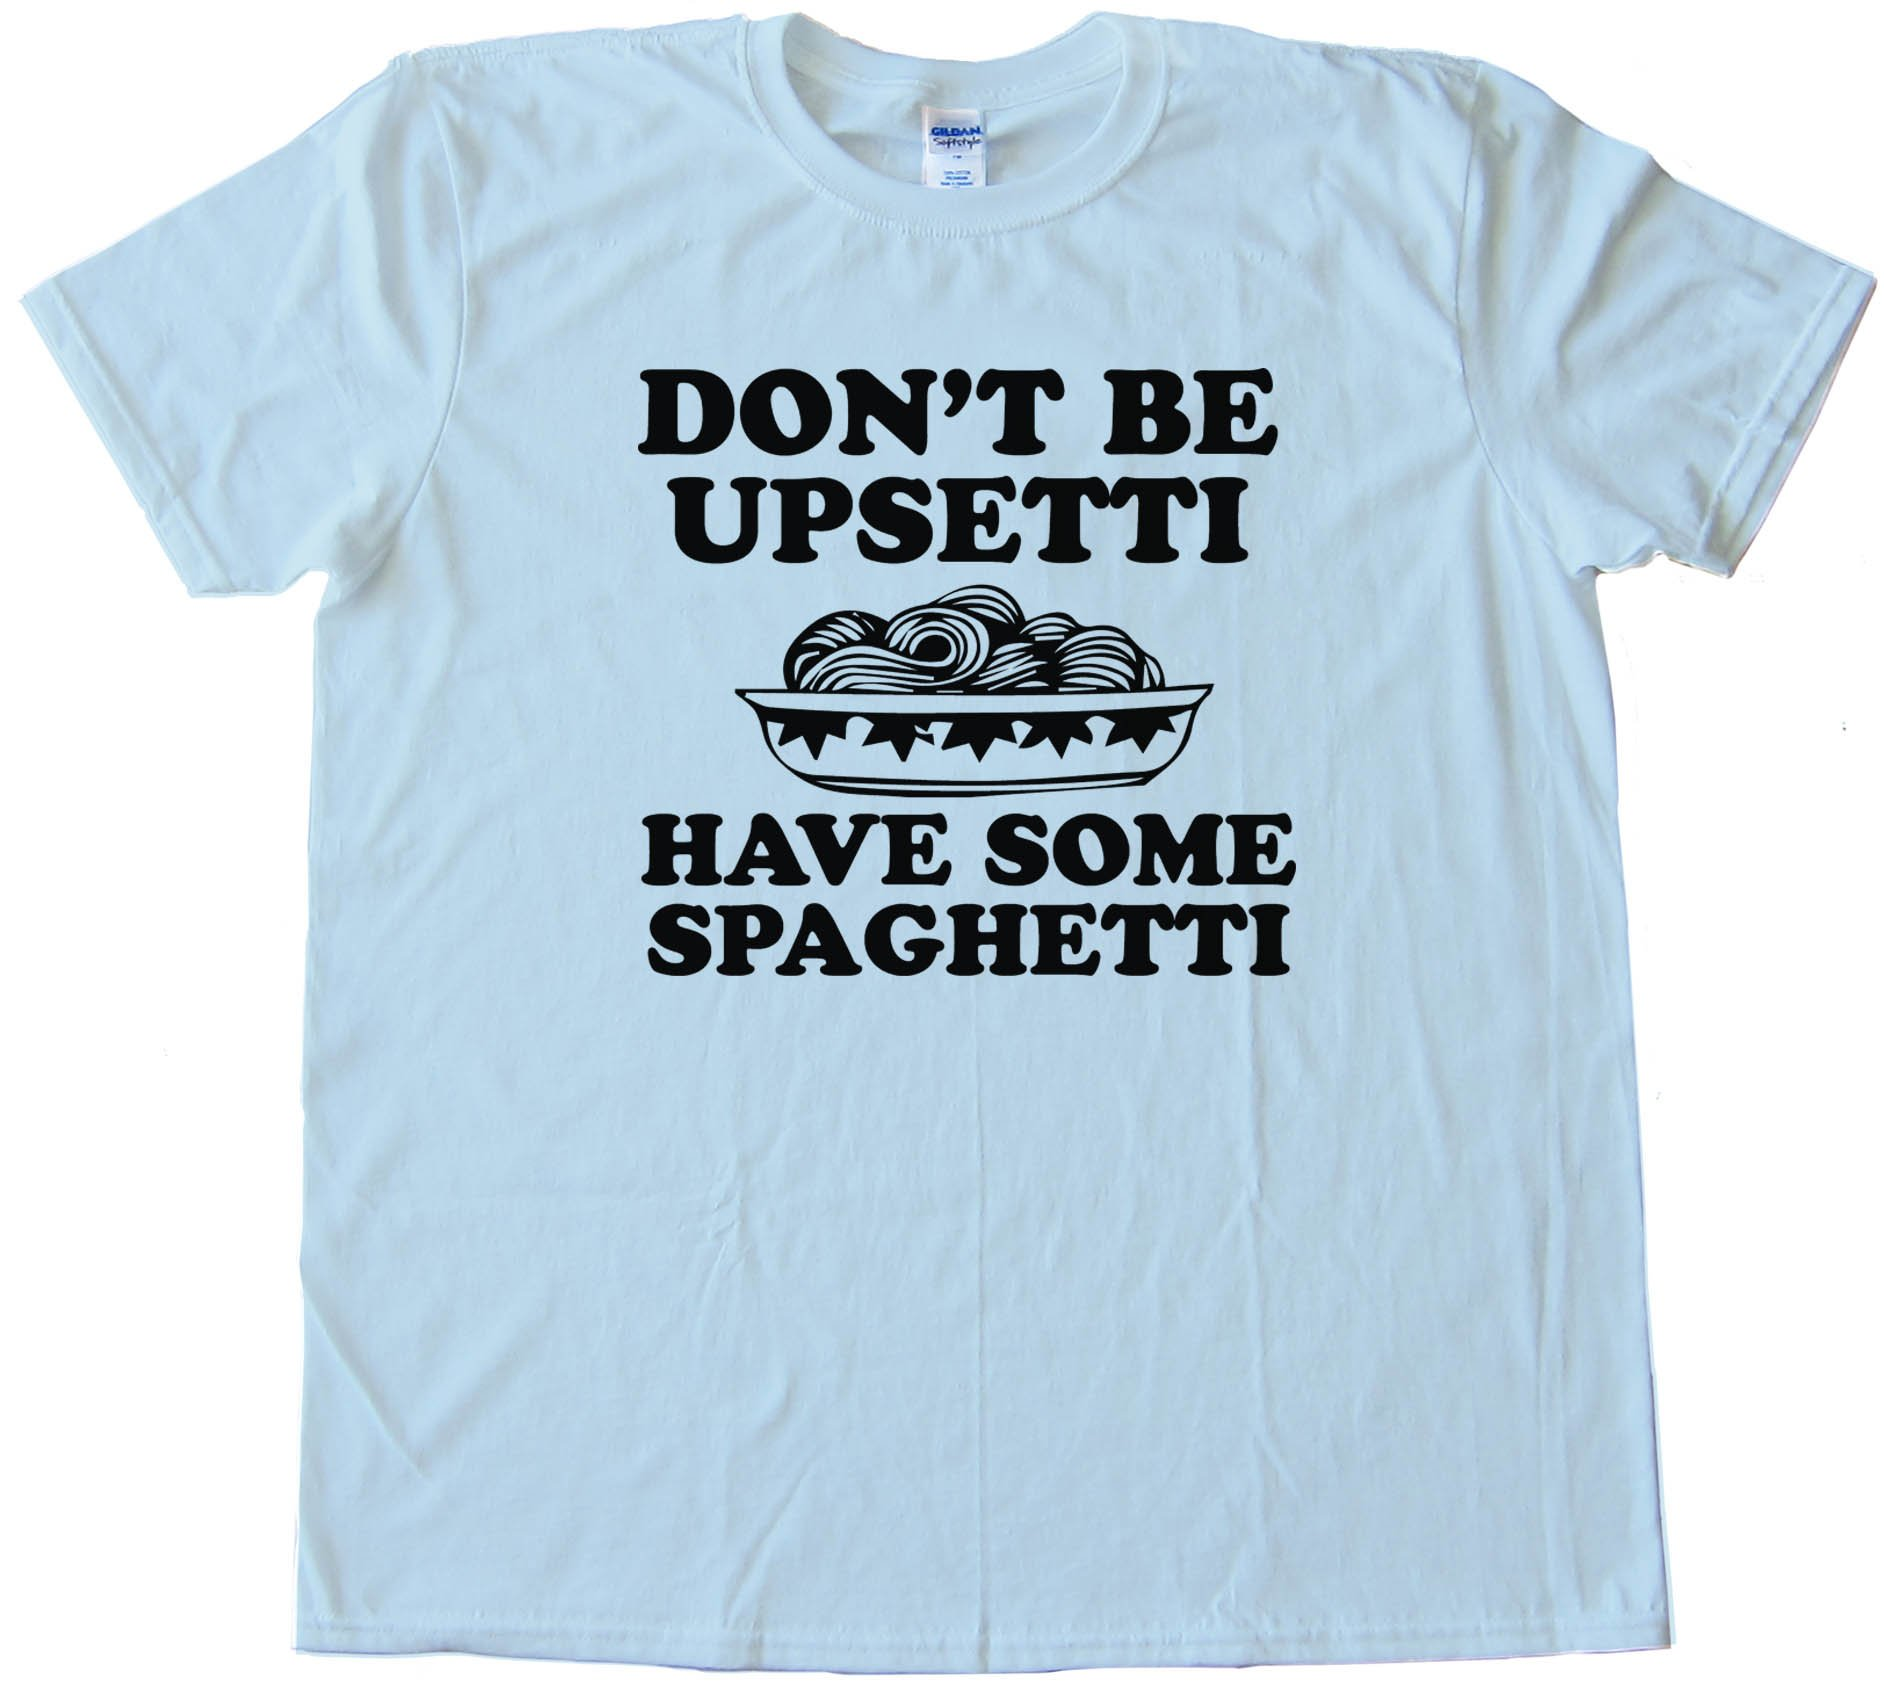 Don'T Be Upsetti Have Some Spaghetti! Tee Shirt